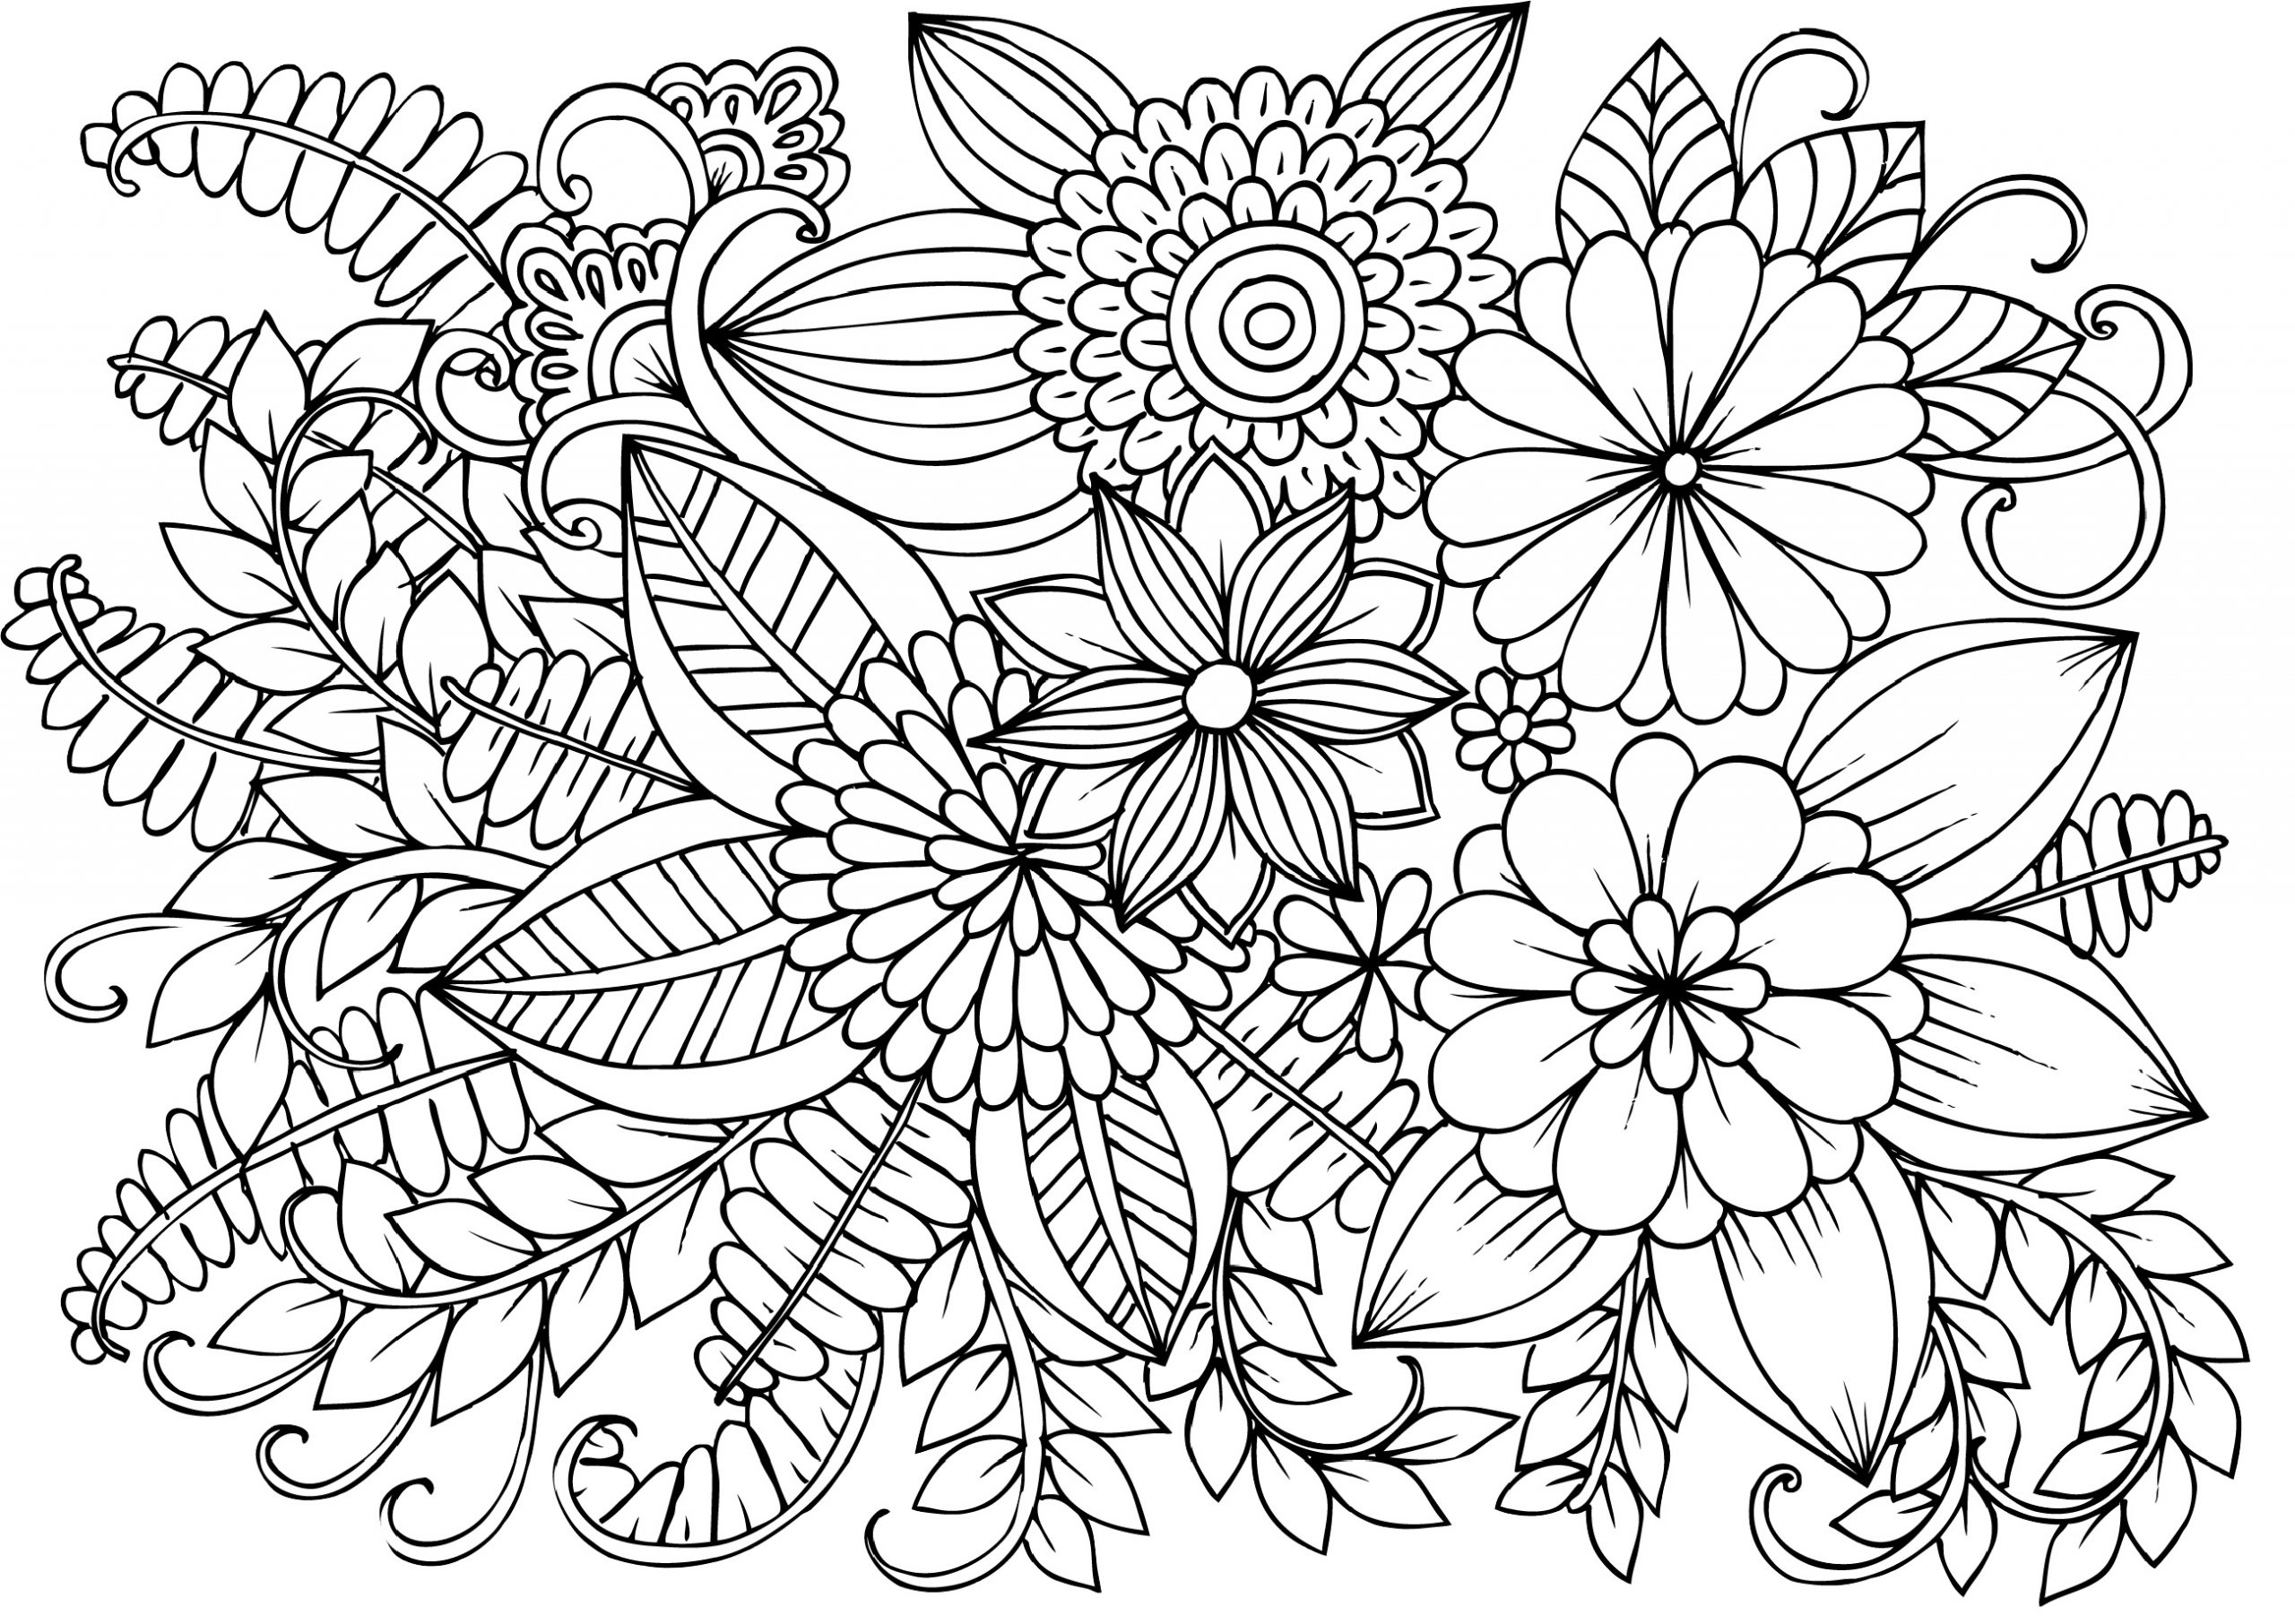 flower coloring pages adults free adult coloring pages 35 gorgeous printable coloring pages adults flower coloring